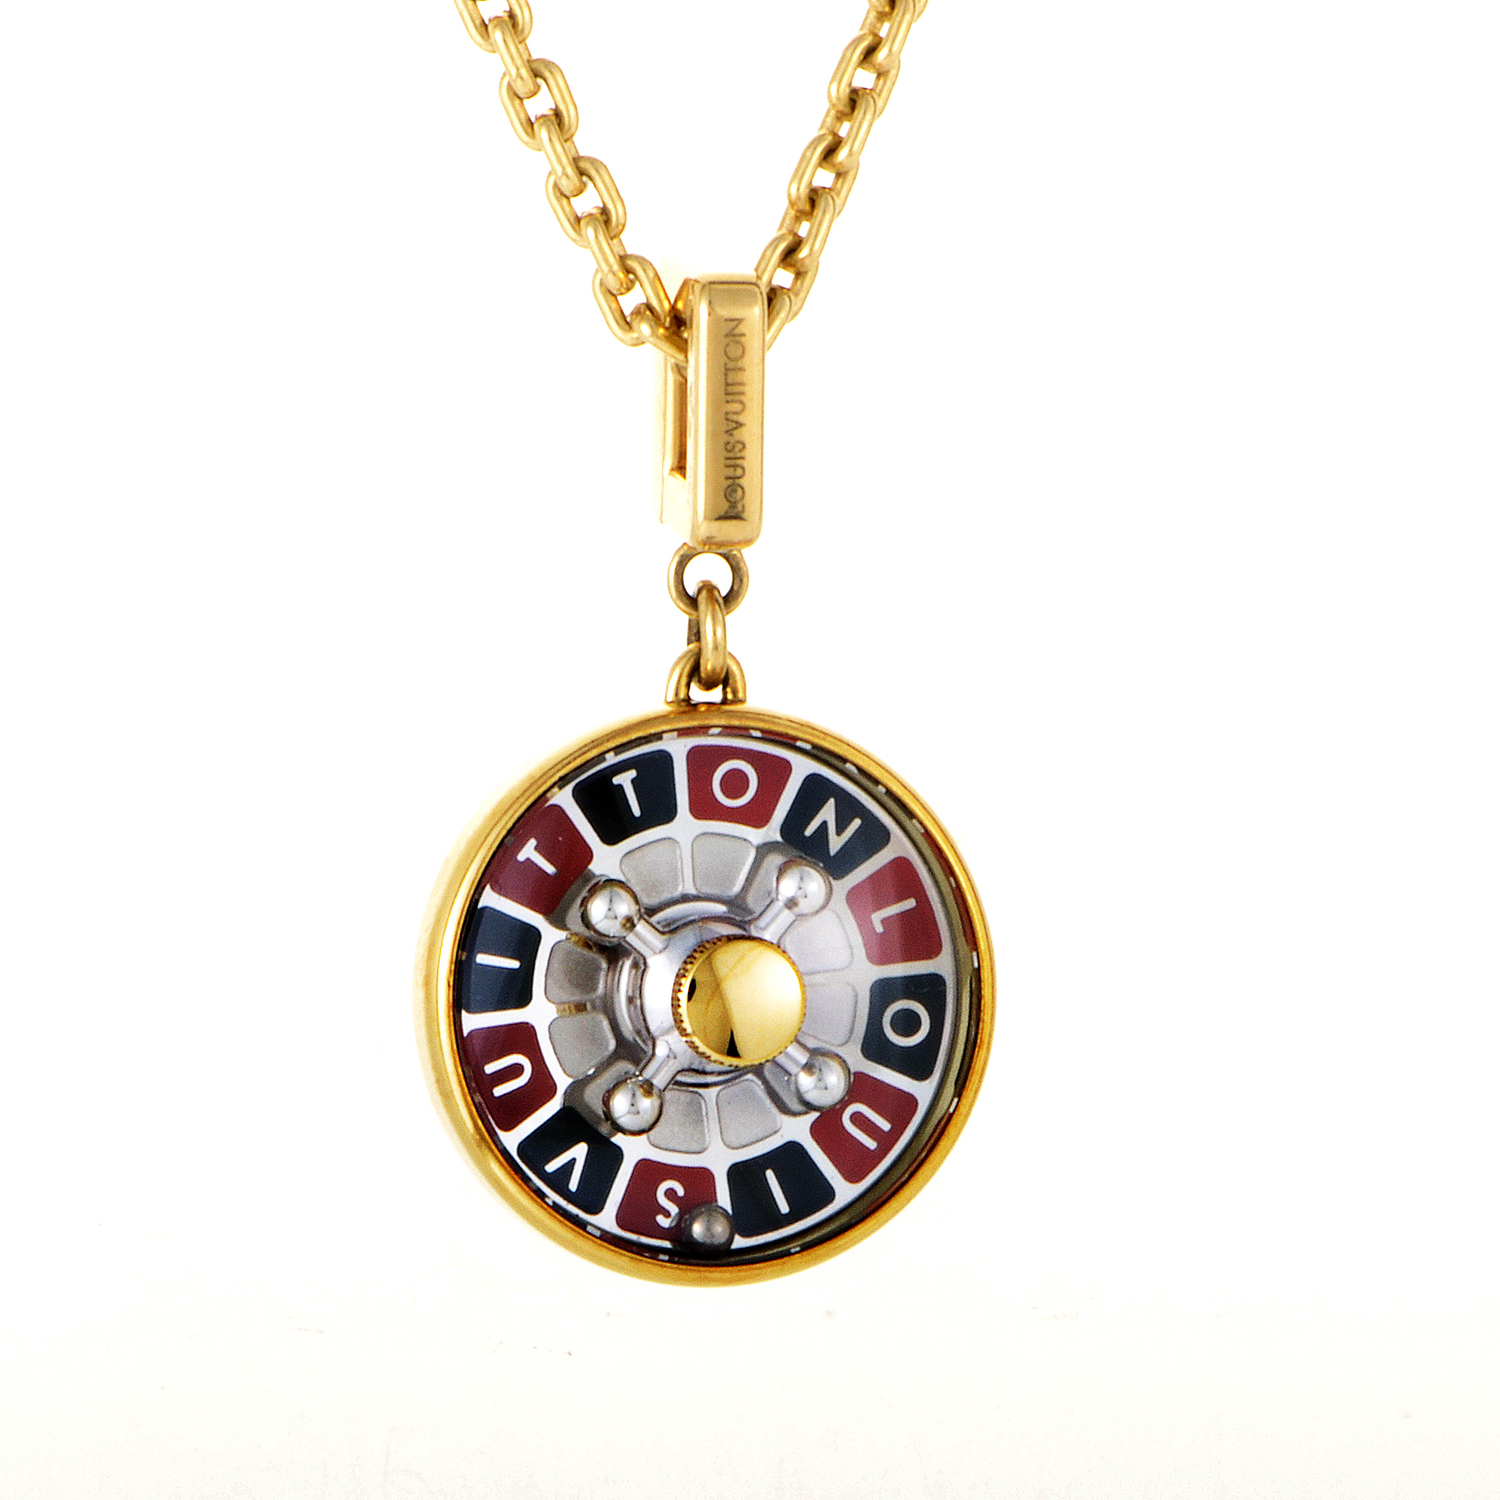 Louis Vuitton 18K Yellow Gold Roulette Pendant Necklace